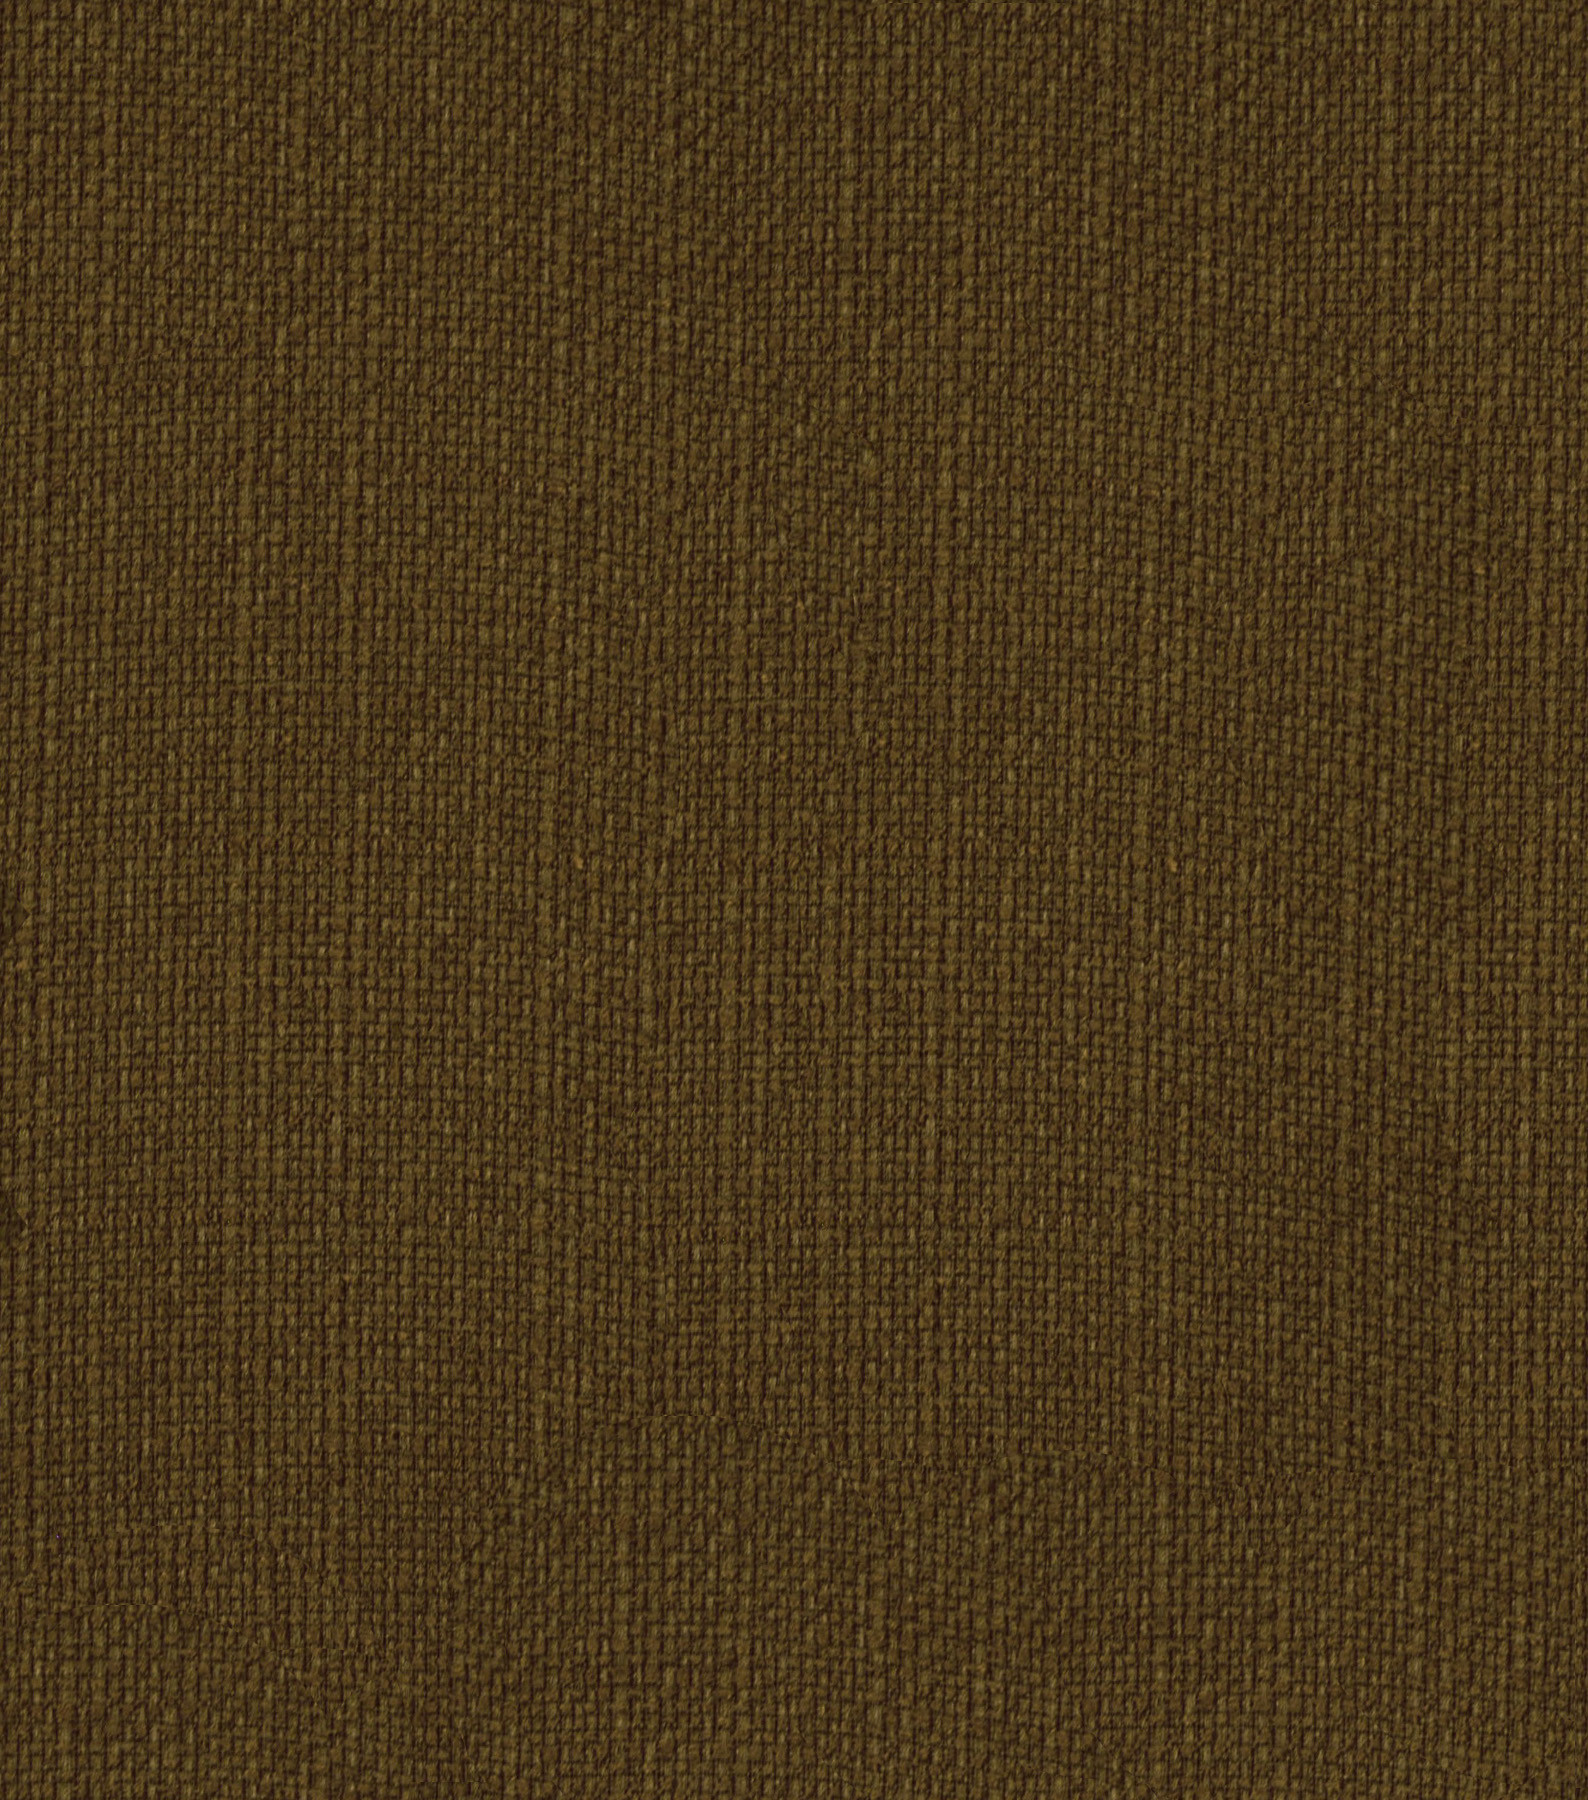 "Home Decor 8""x8"" Fabric Swatch-Signature Series Woodville Toffee"